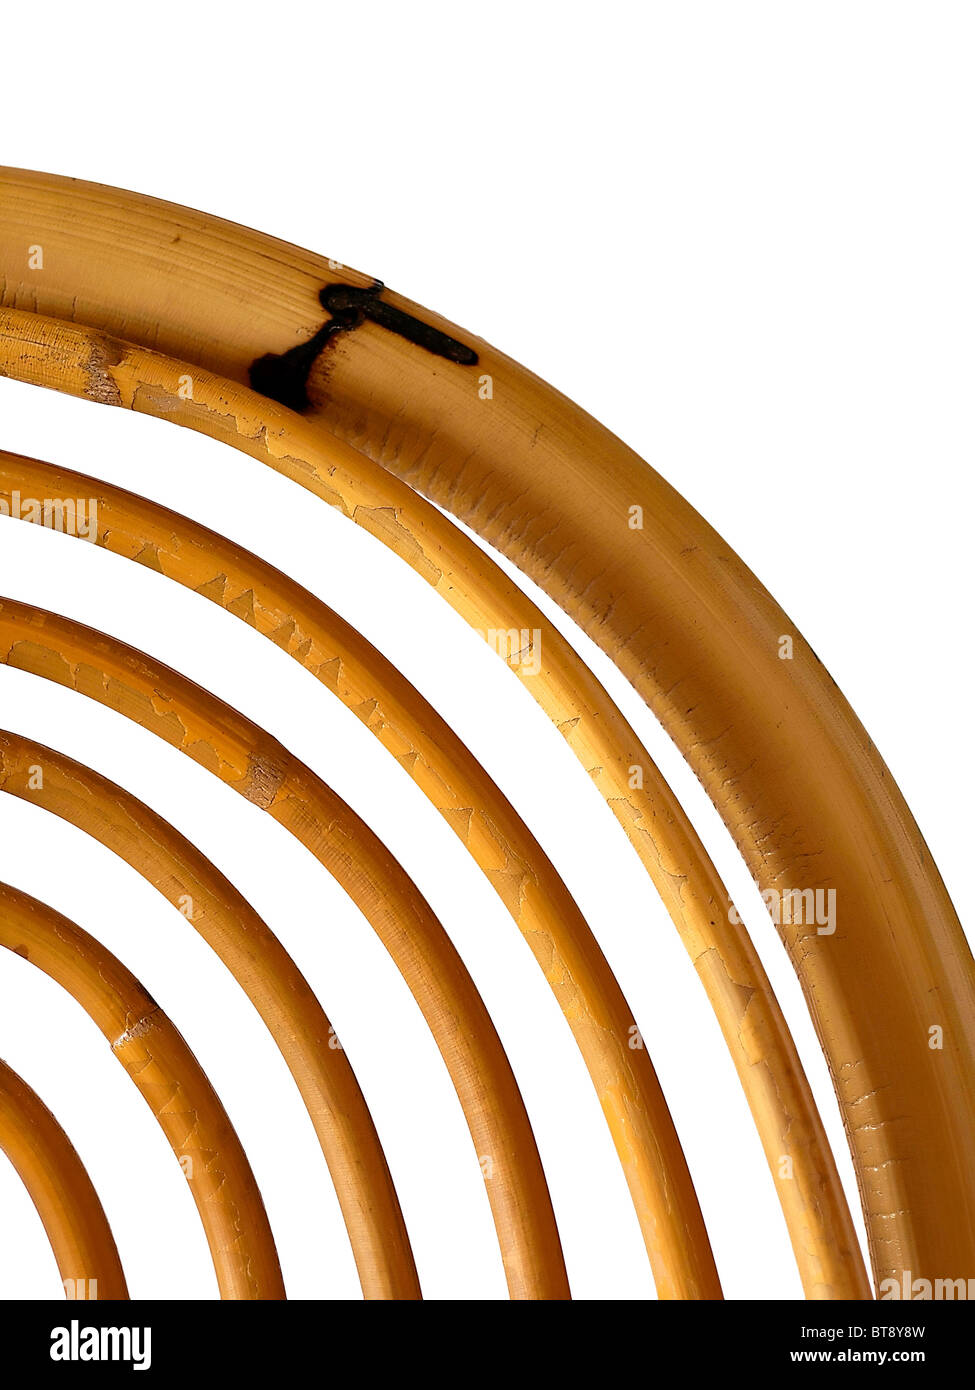 Detail Of An Chair Made Of Bamboo   Stock Image